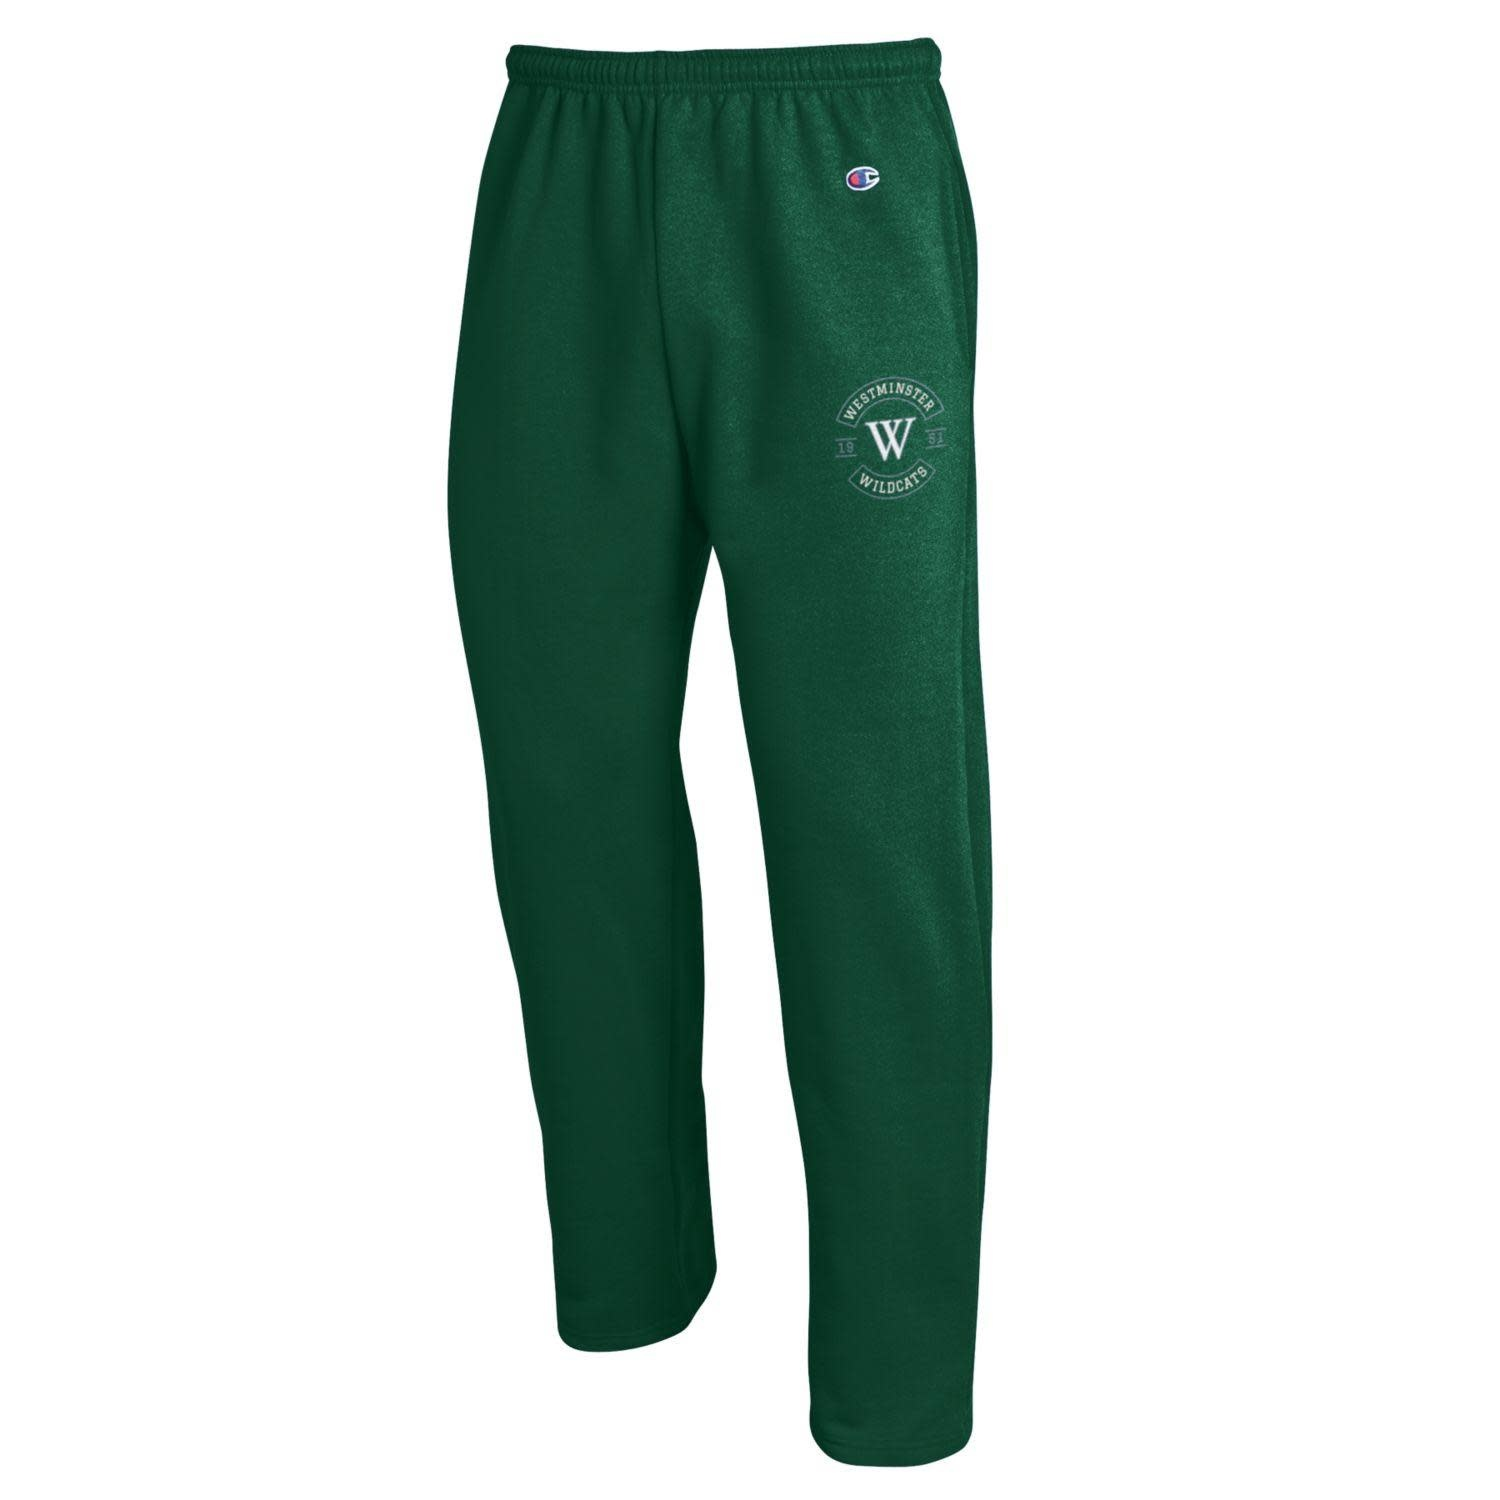 Champion Sweatpants: Champion Open Bottom w/pockets  - Green